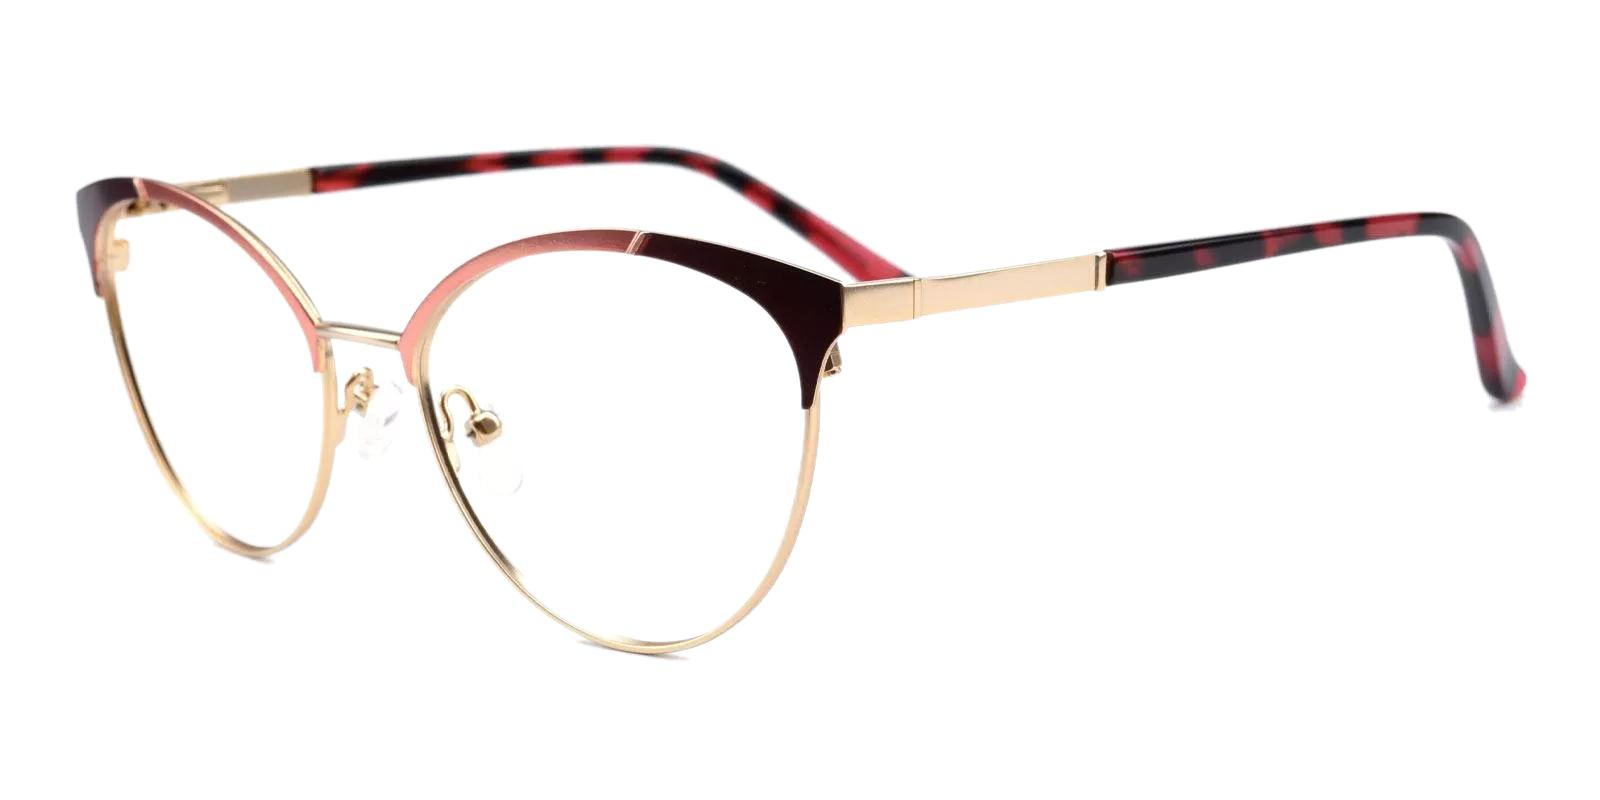 Huxley Red Metal Eyeglasses , Fashion , NosePads , SpringHinges Frames from ABBE Glasses